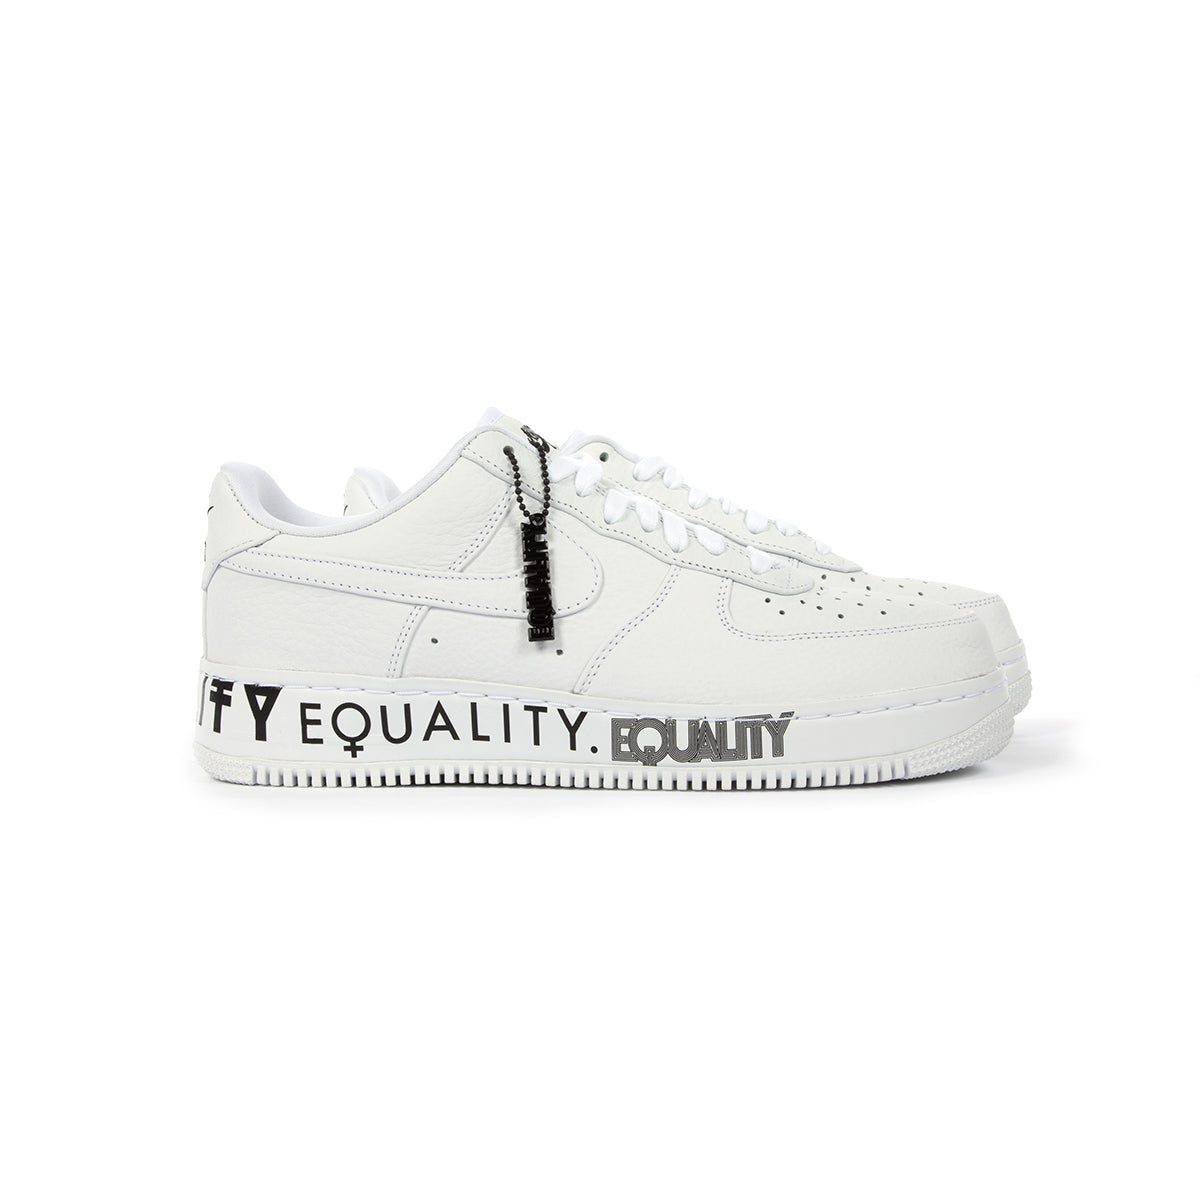 best website bcfa9 f6323 ConceptsIntl | Nike Air Force 1 Low CMFT Equality (White ...